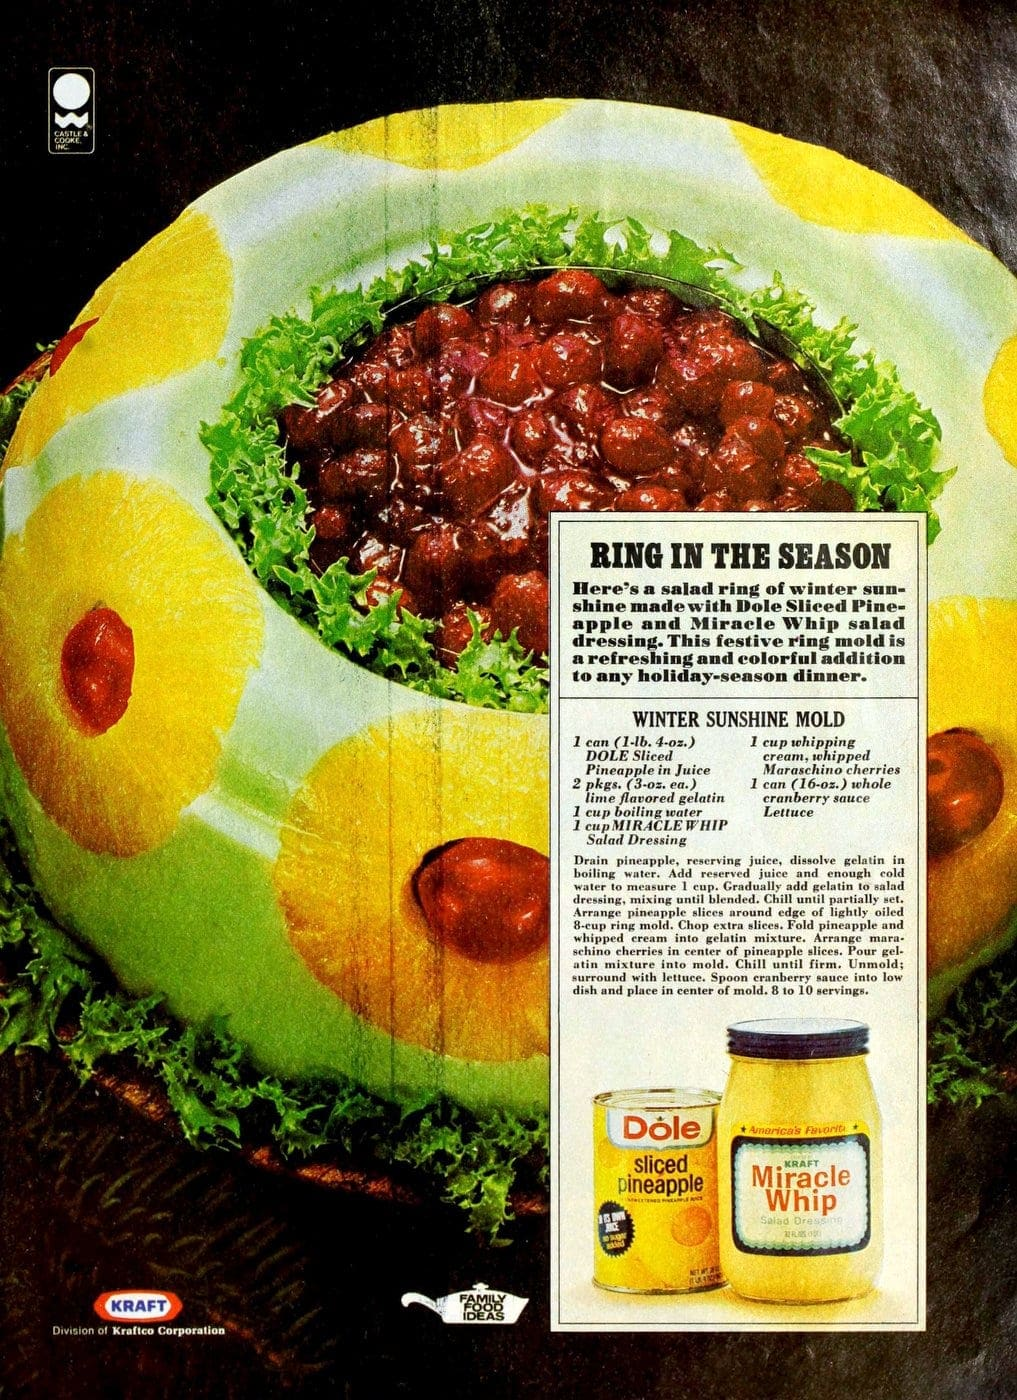 Vintage 1976 Winter Sunshine Mold with pineapple miracle whip gelatin and cranberry sauce recipe